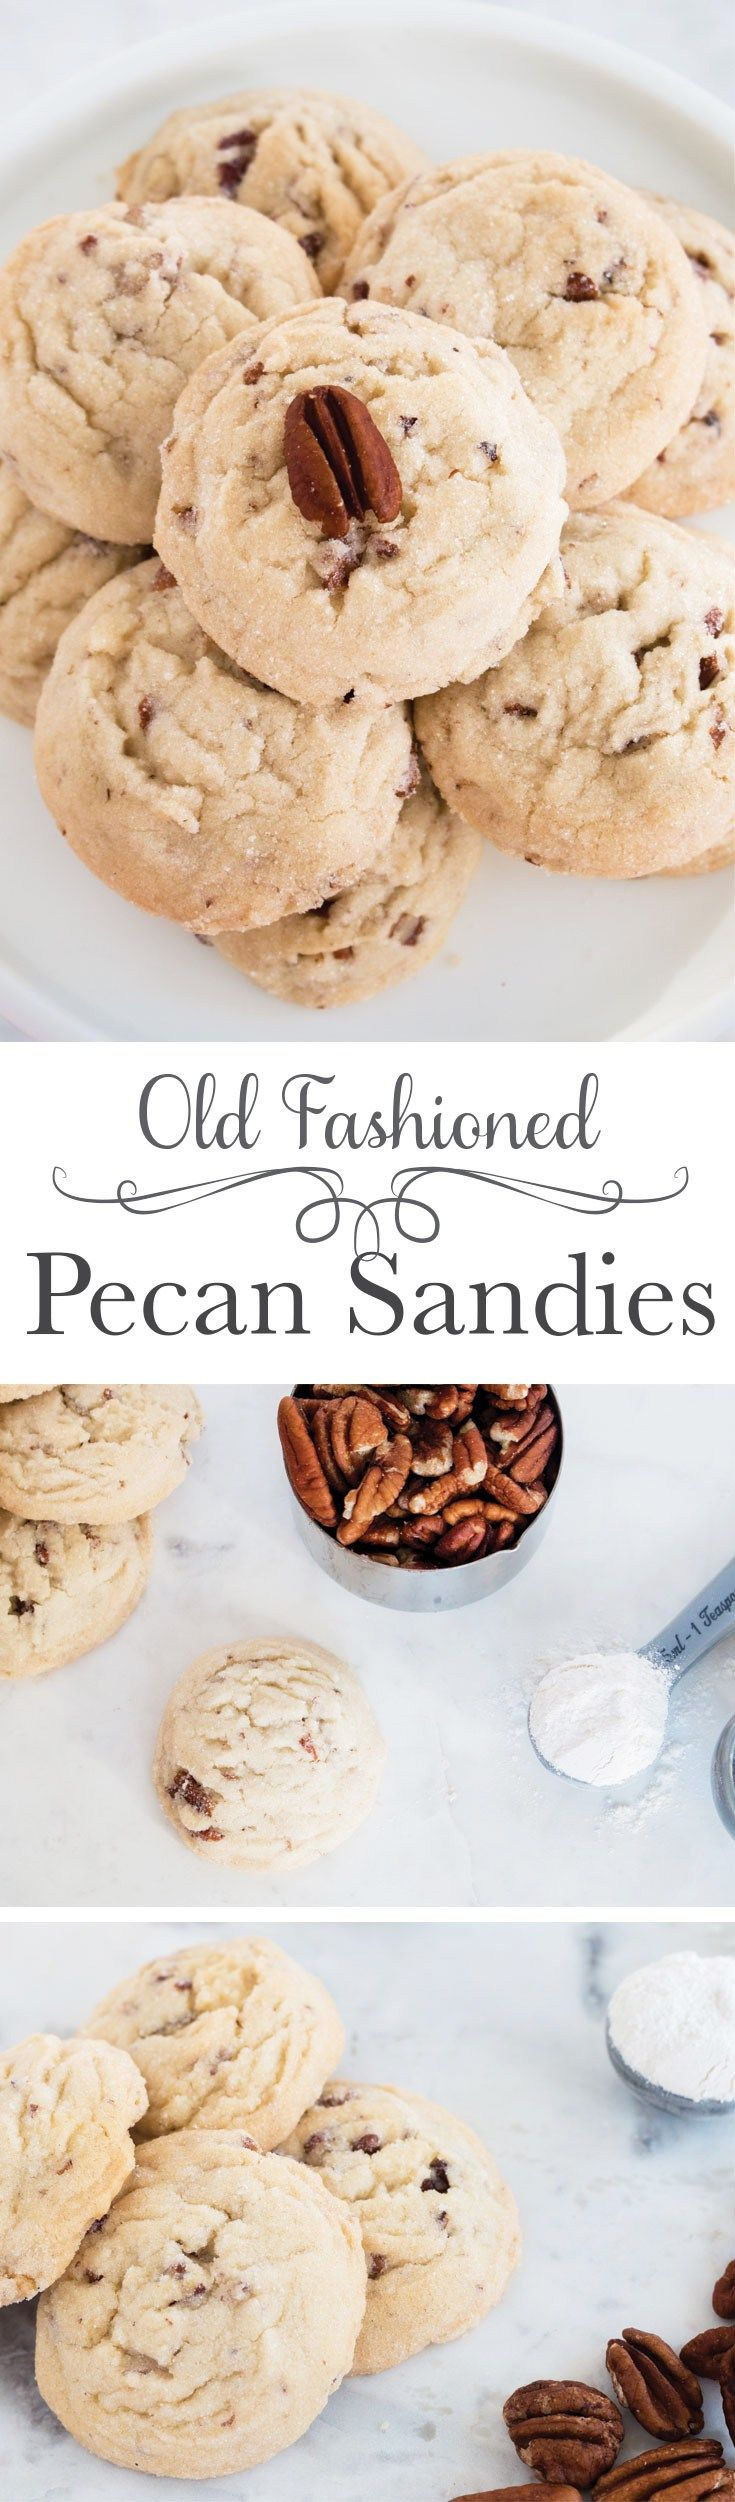 Melt in your mouth pecan sandies - These bring back so many memories of my childhood! Way better than those store bought ones too!